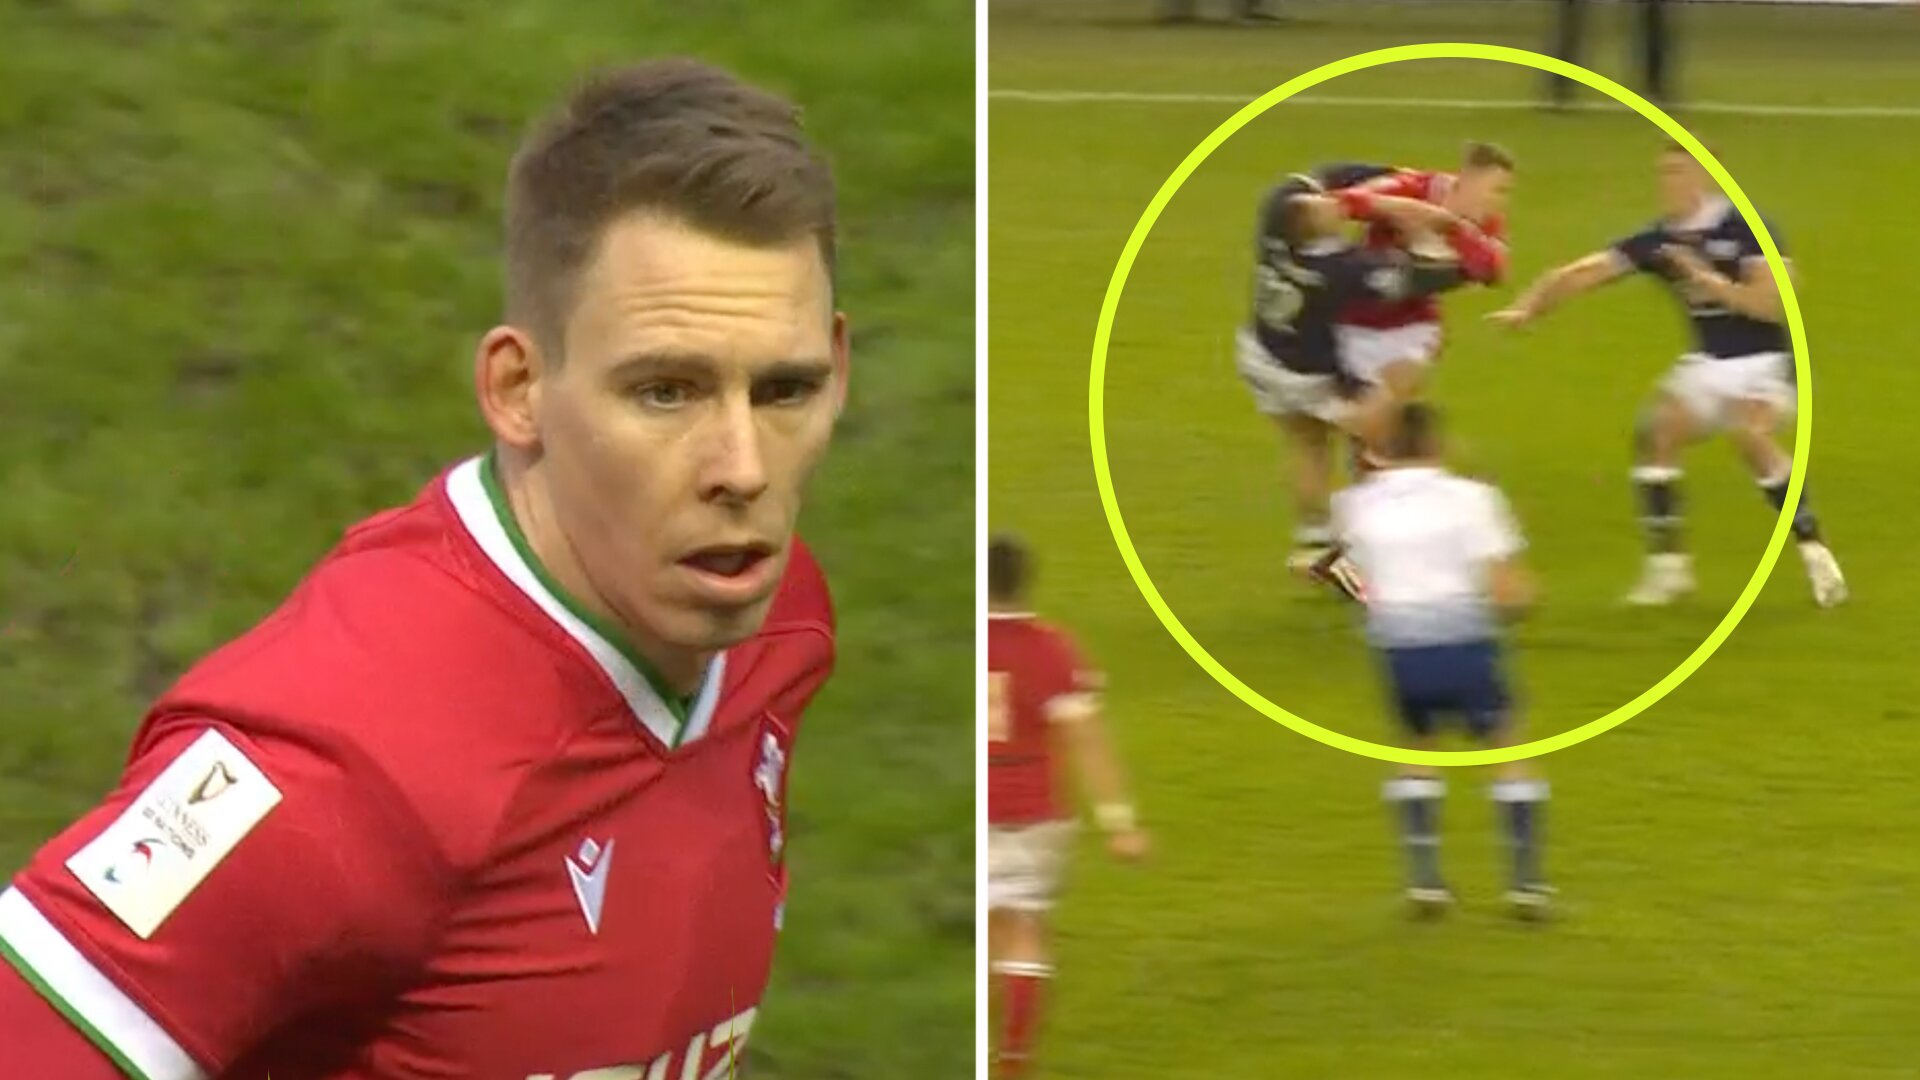 Scotland fans urge Liams Williams cheap elbow shot be investigated in Six Nations